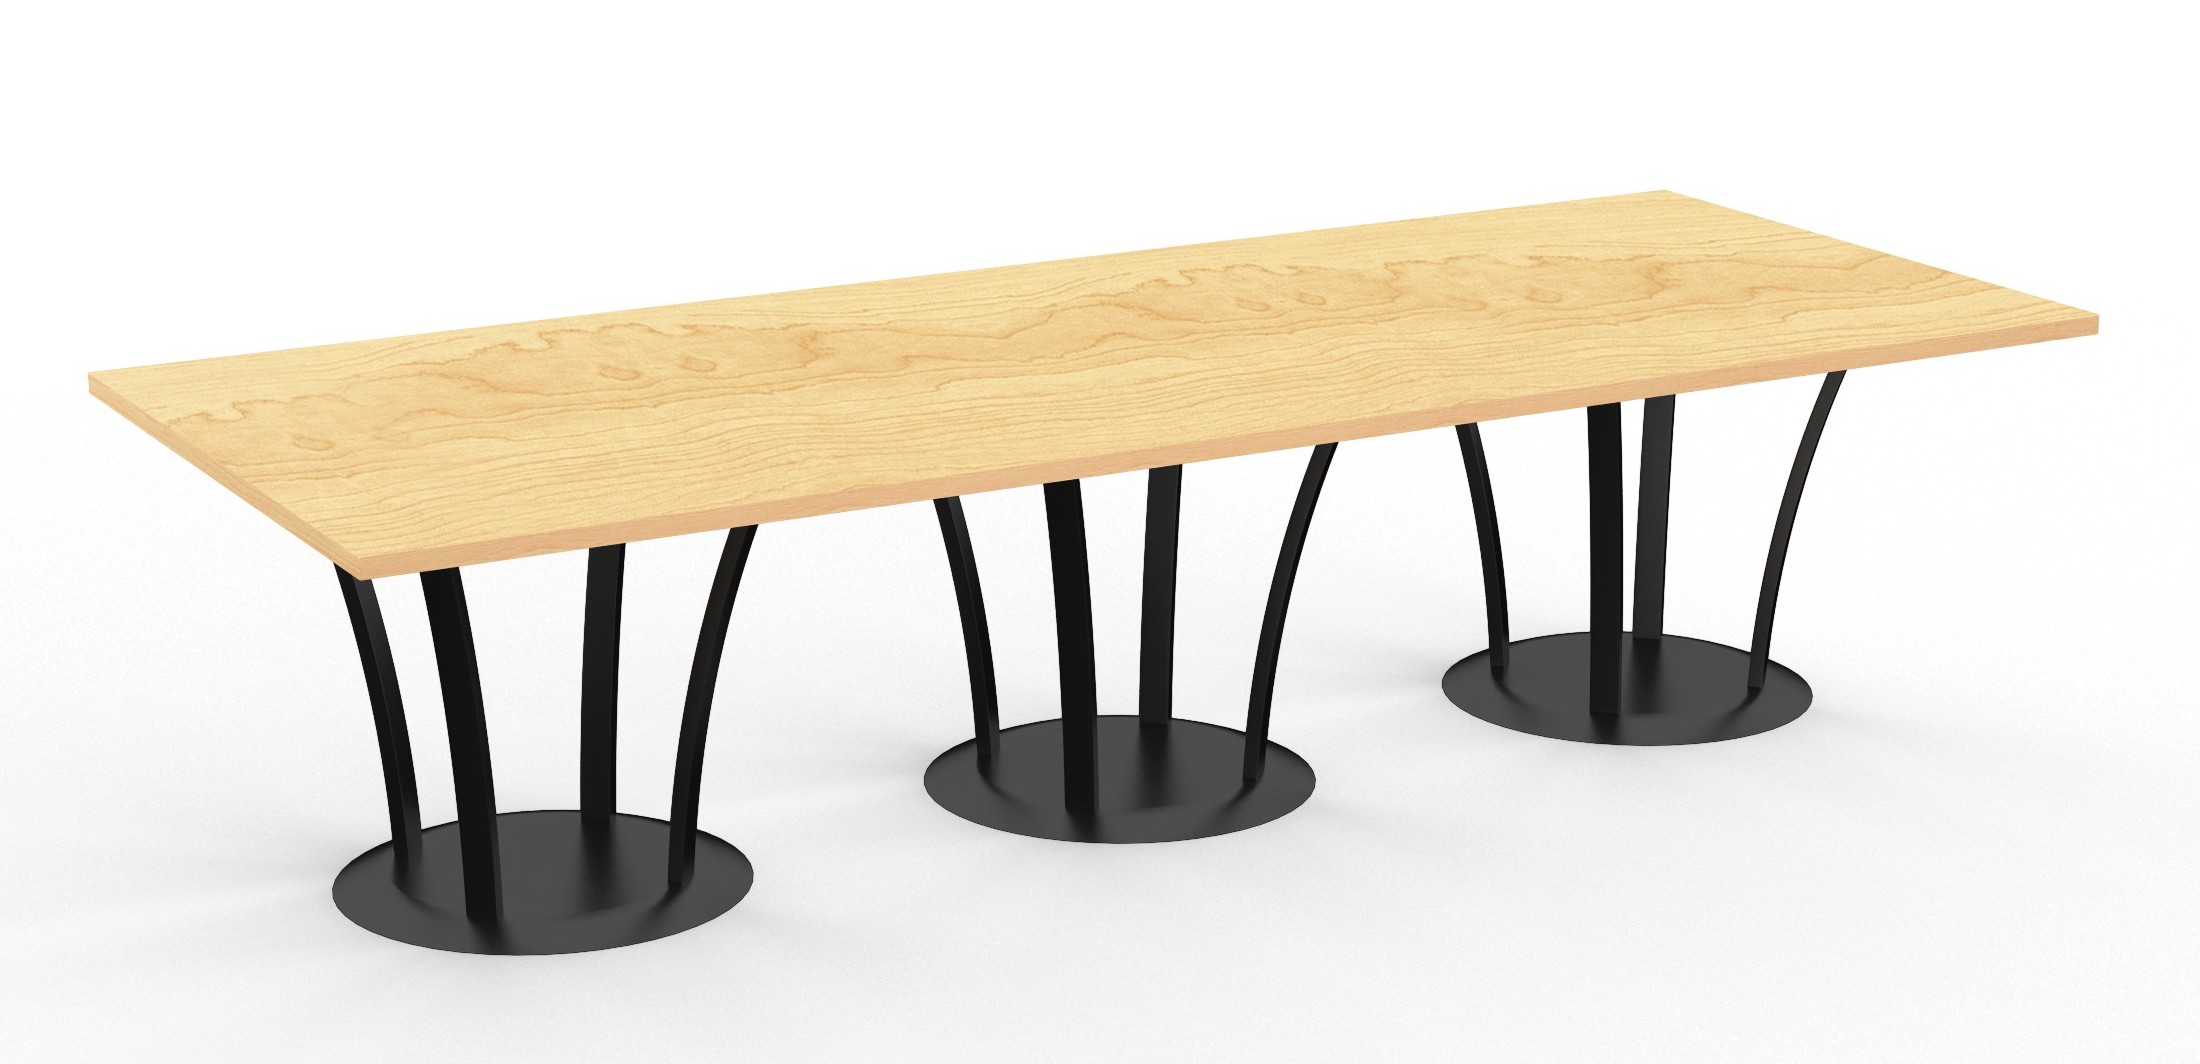 structure fountain base 10' long conference table